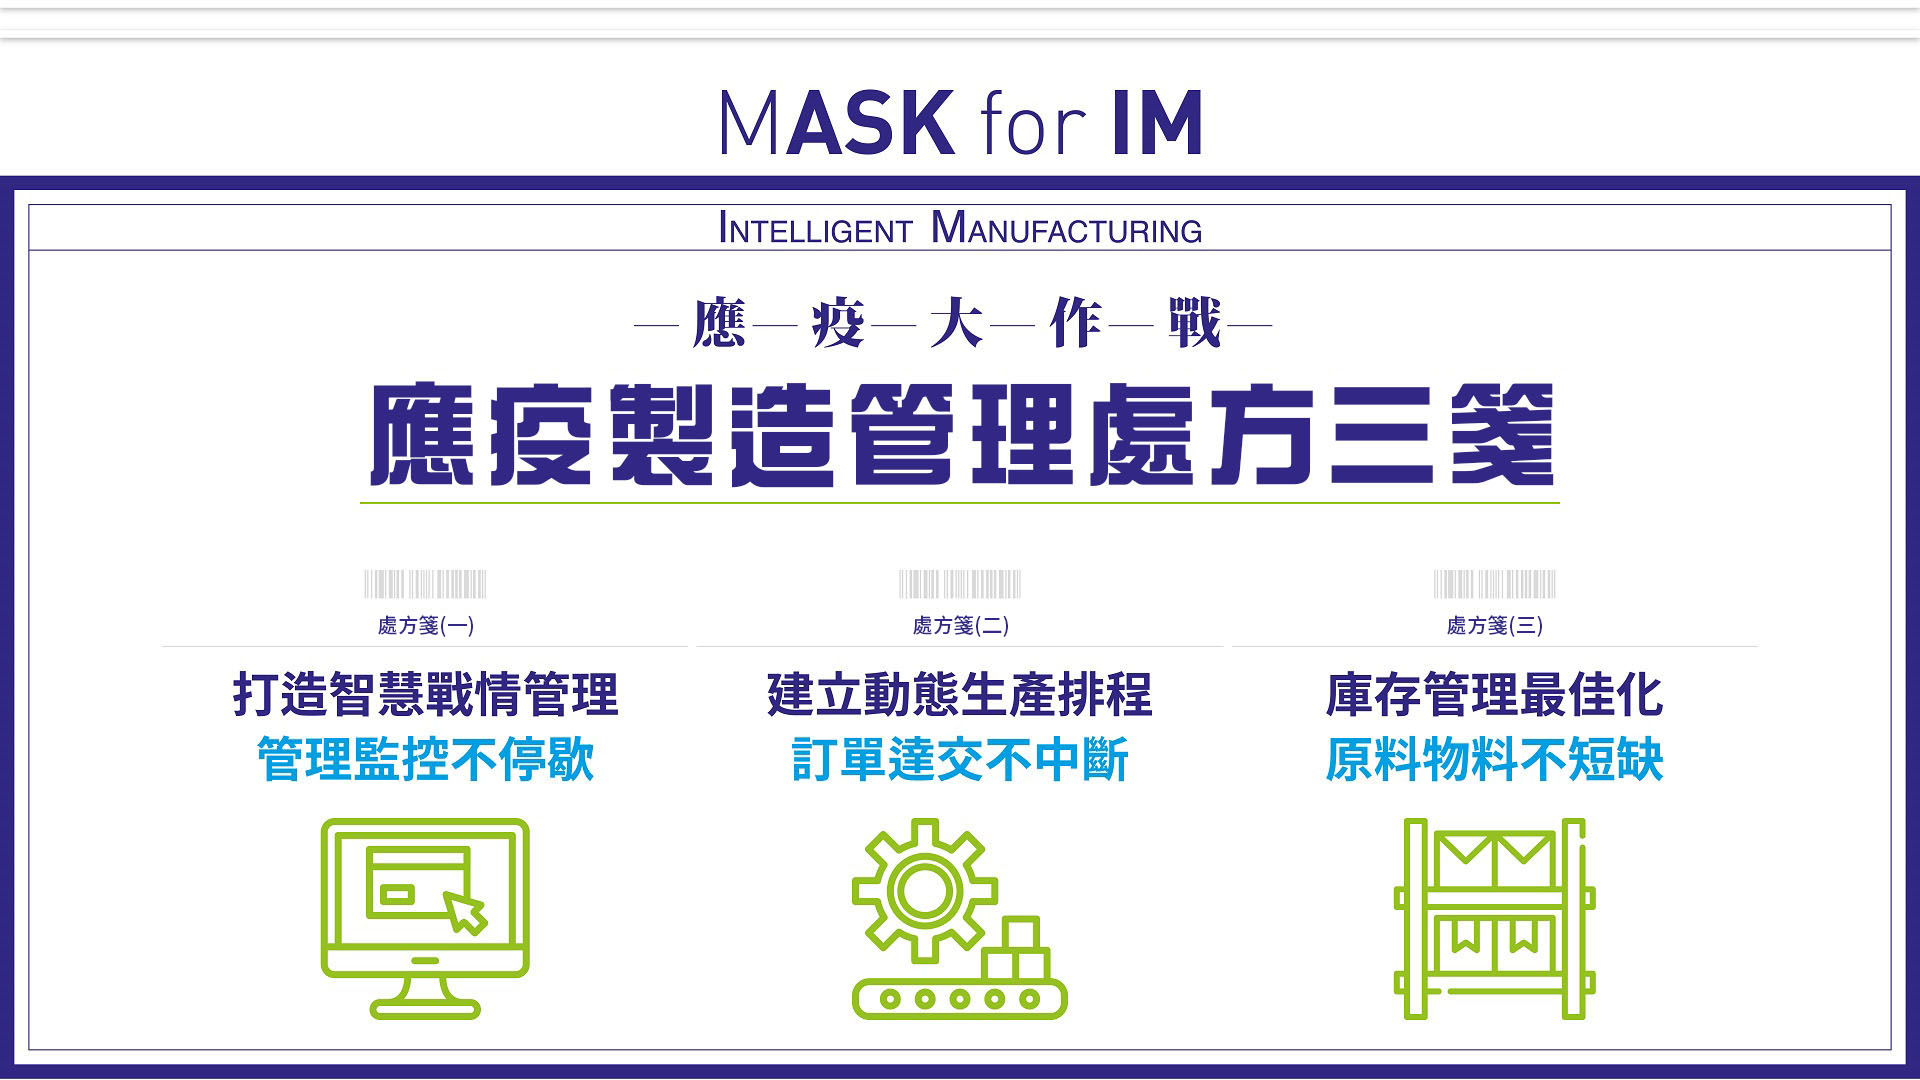 Mask for IM_0213_cc